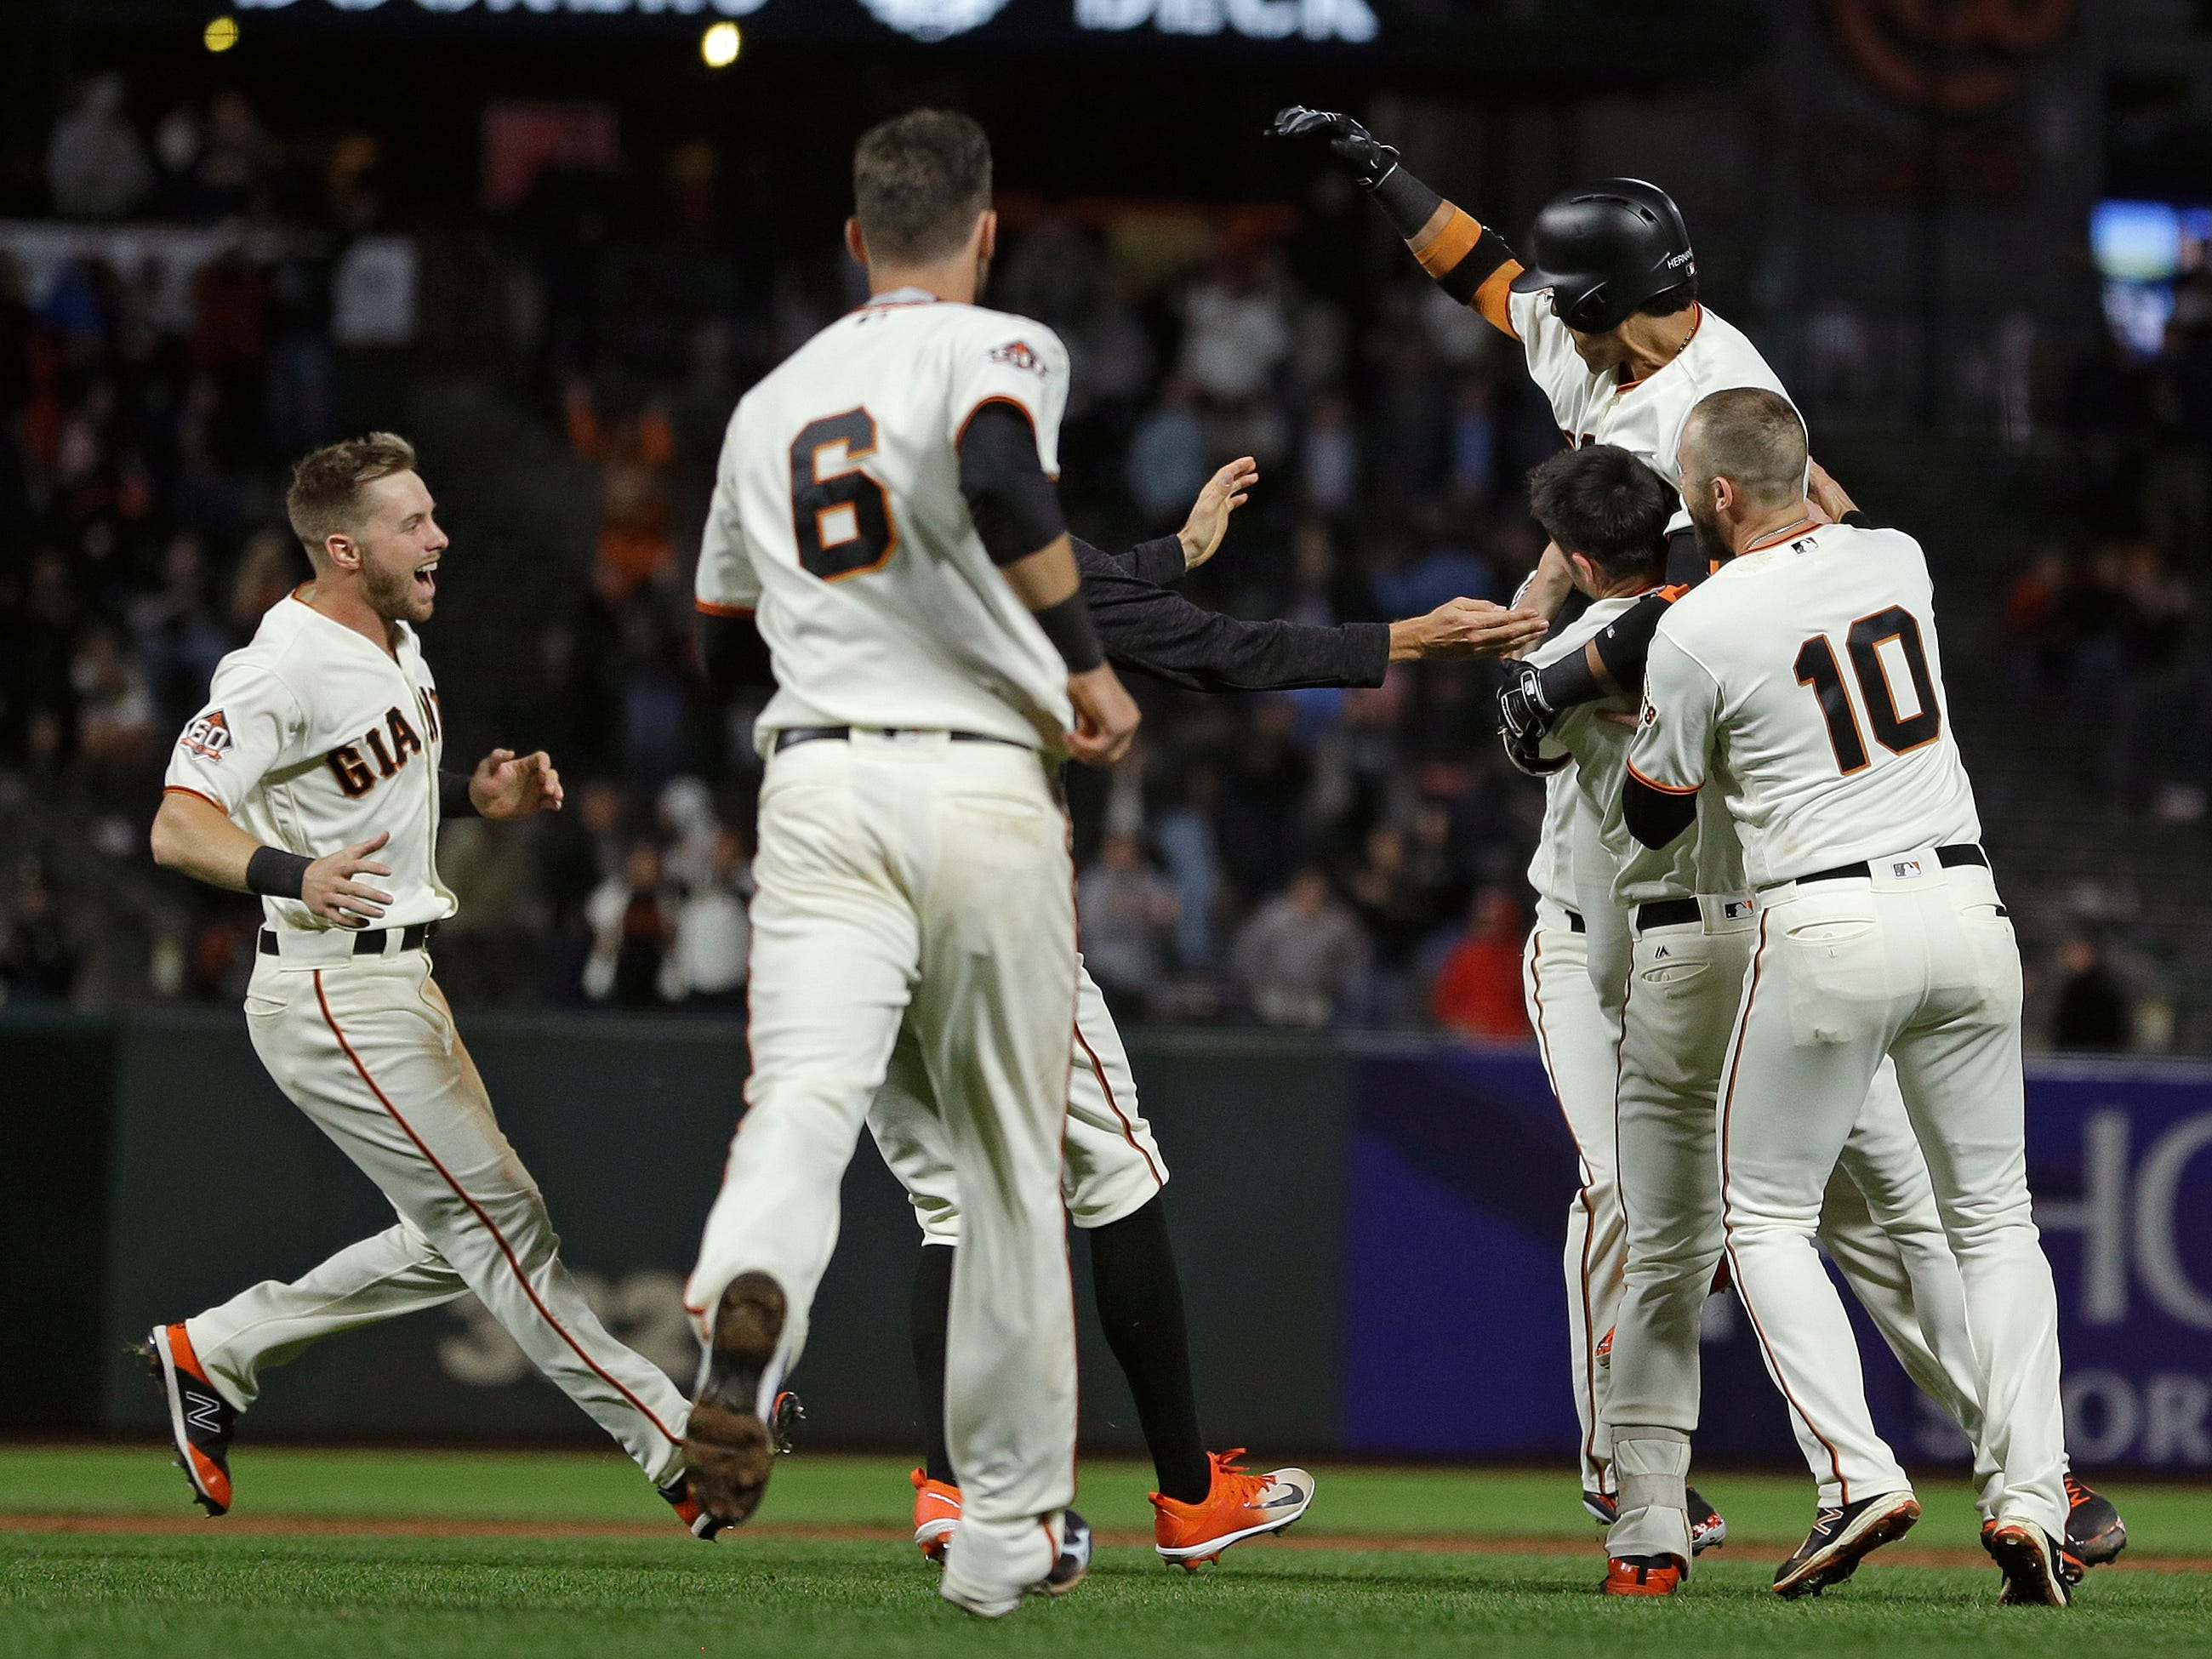 San Francisco Giants' Gorkys Hernandez, top right, is mobbed by his teammates after hitting a walk-off single against Arizona Diamondbacks relief pitcher Jake Diekman in the ninth inning of a baseball game, Tuesday, Aug. 28, 2018, in San Francisco. San Francisco won the game 1-0. (AP Photo/Eric Risberg)